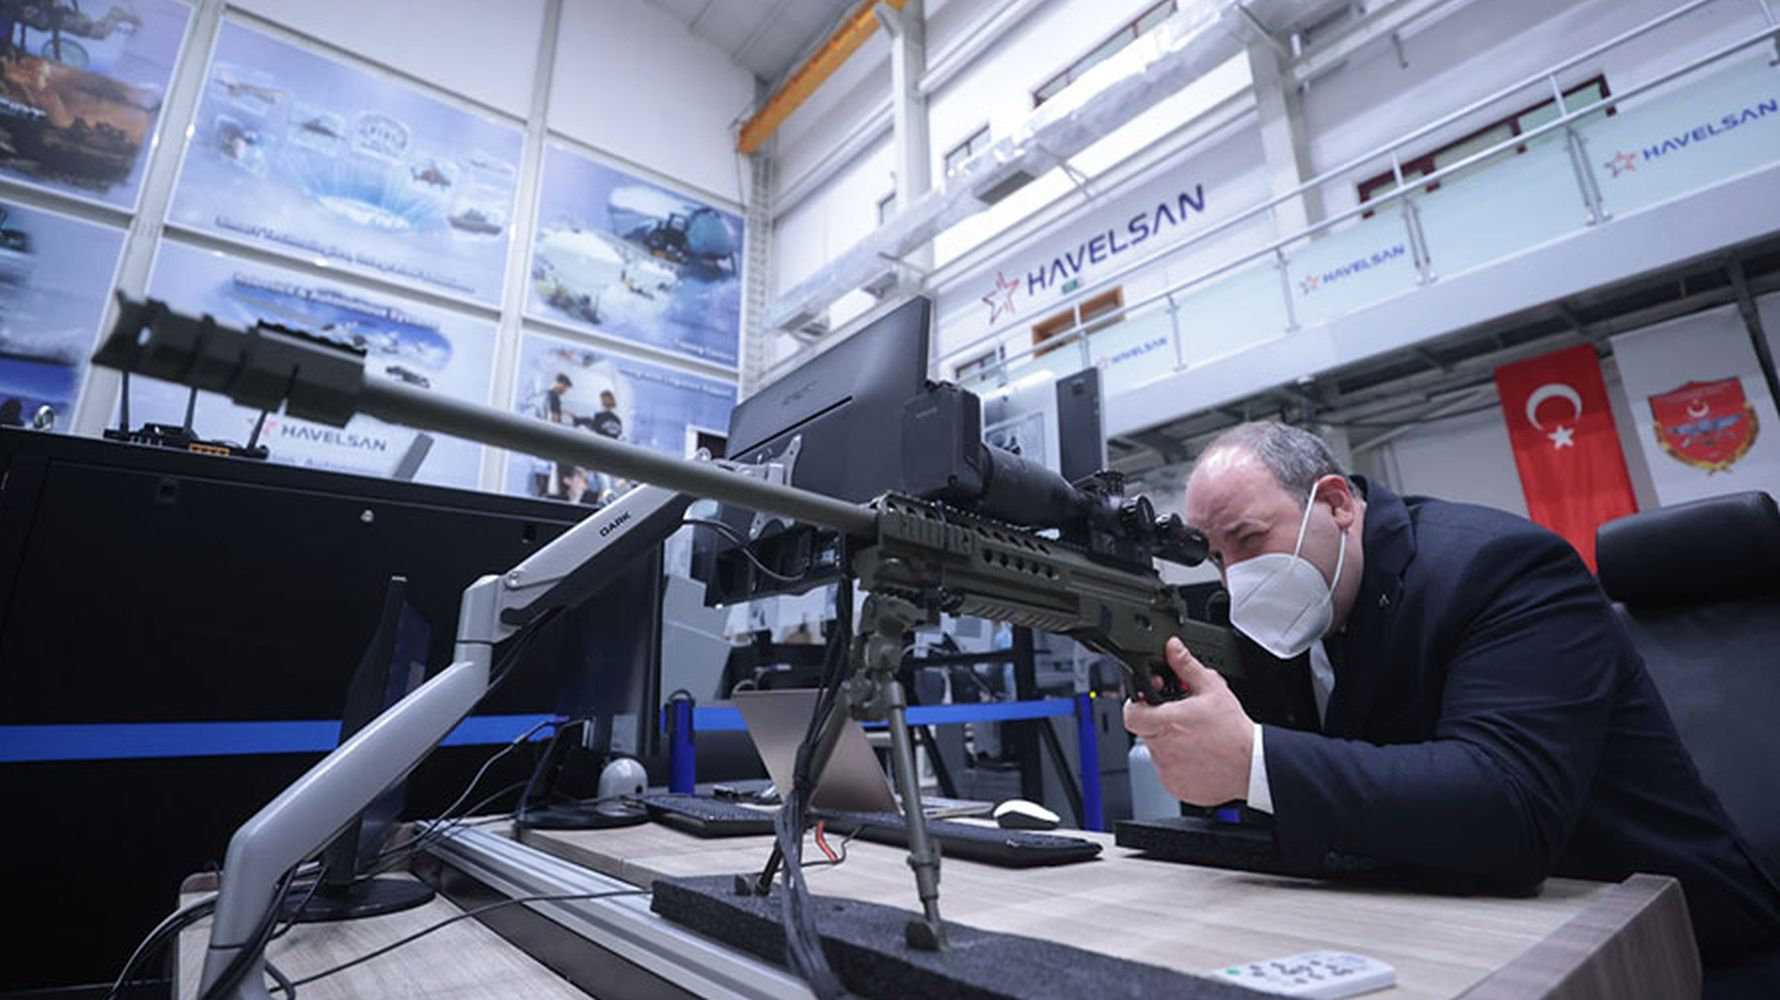 minister varank tried the sniper simulator of havelsan